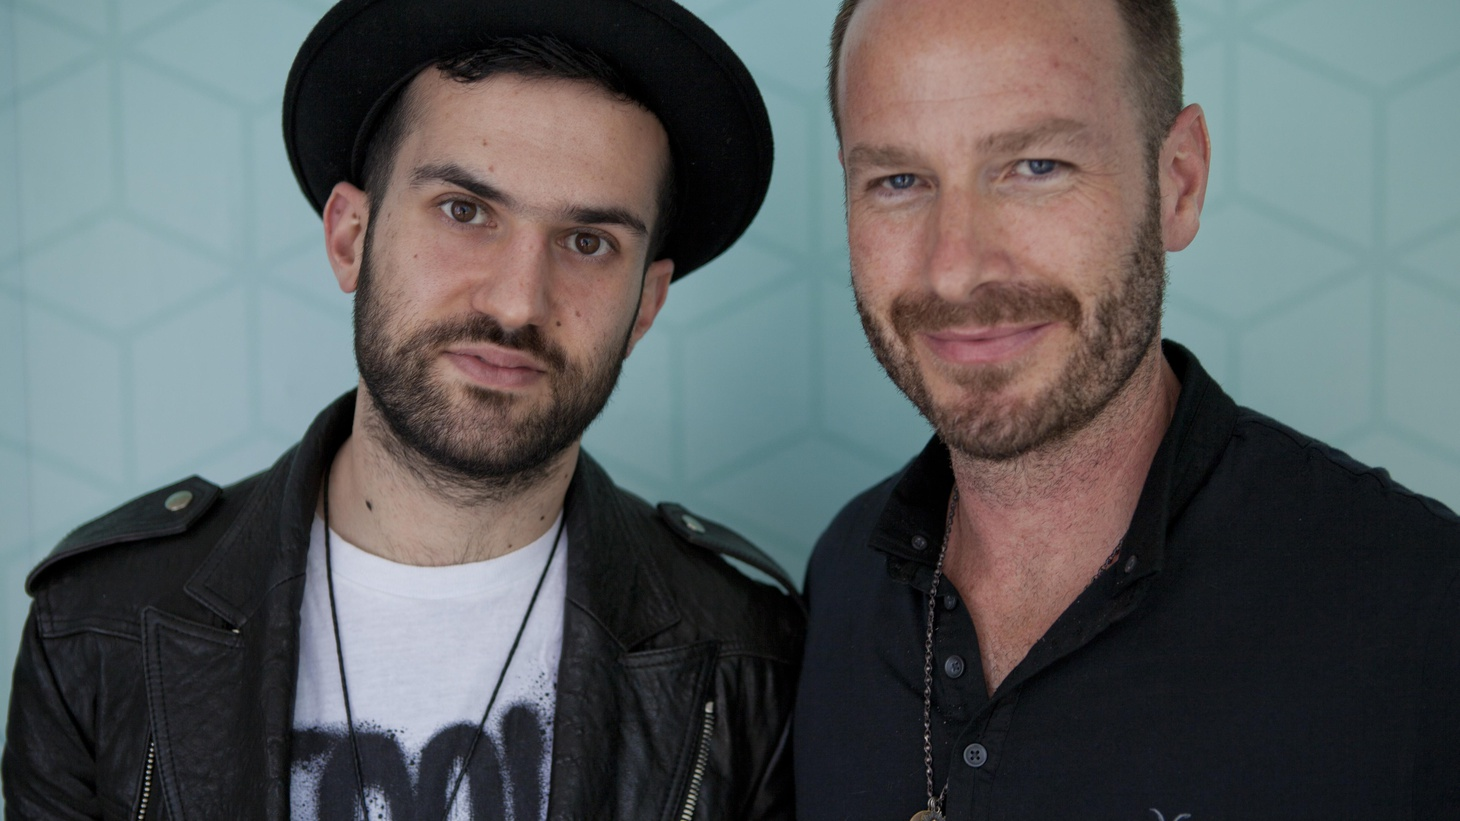 An outspoken and thoughtful leader in dance music and DJ culture, A-Trak stopped by KCRW for a conversation on his evolution as a DJ, Producer, and record label head.